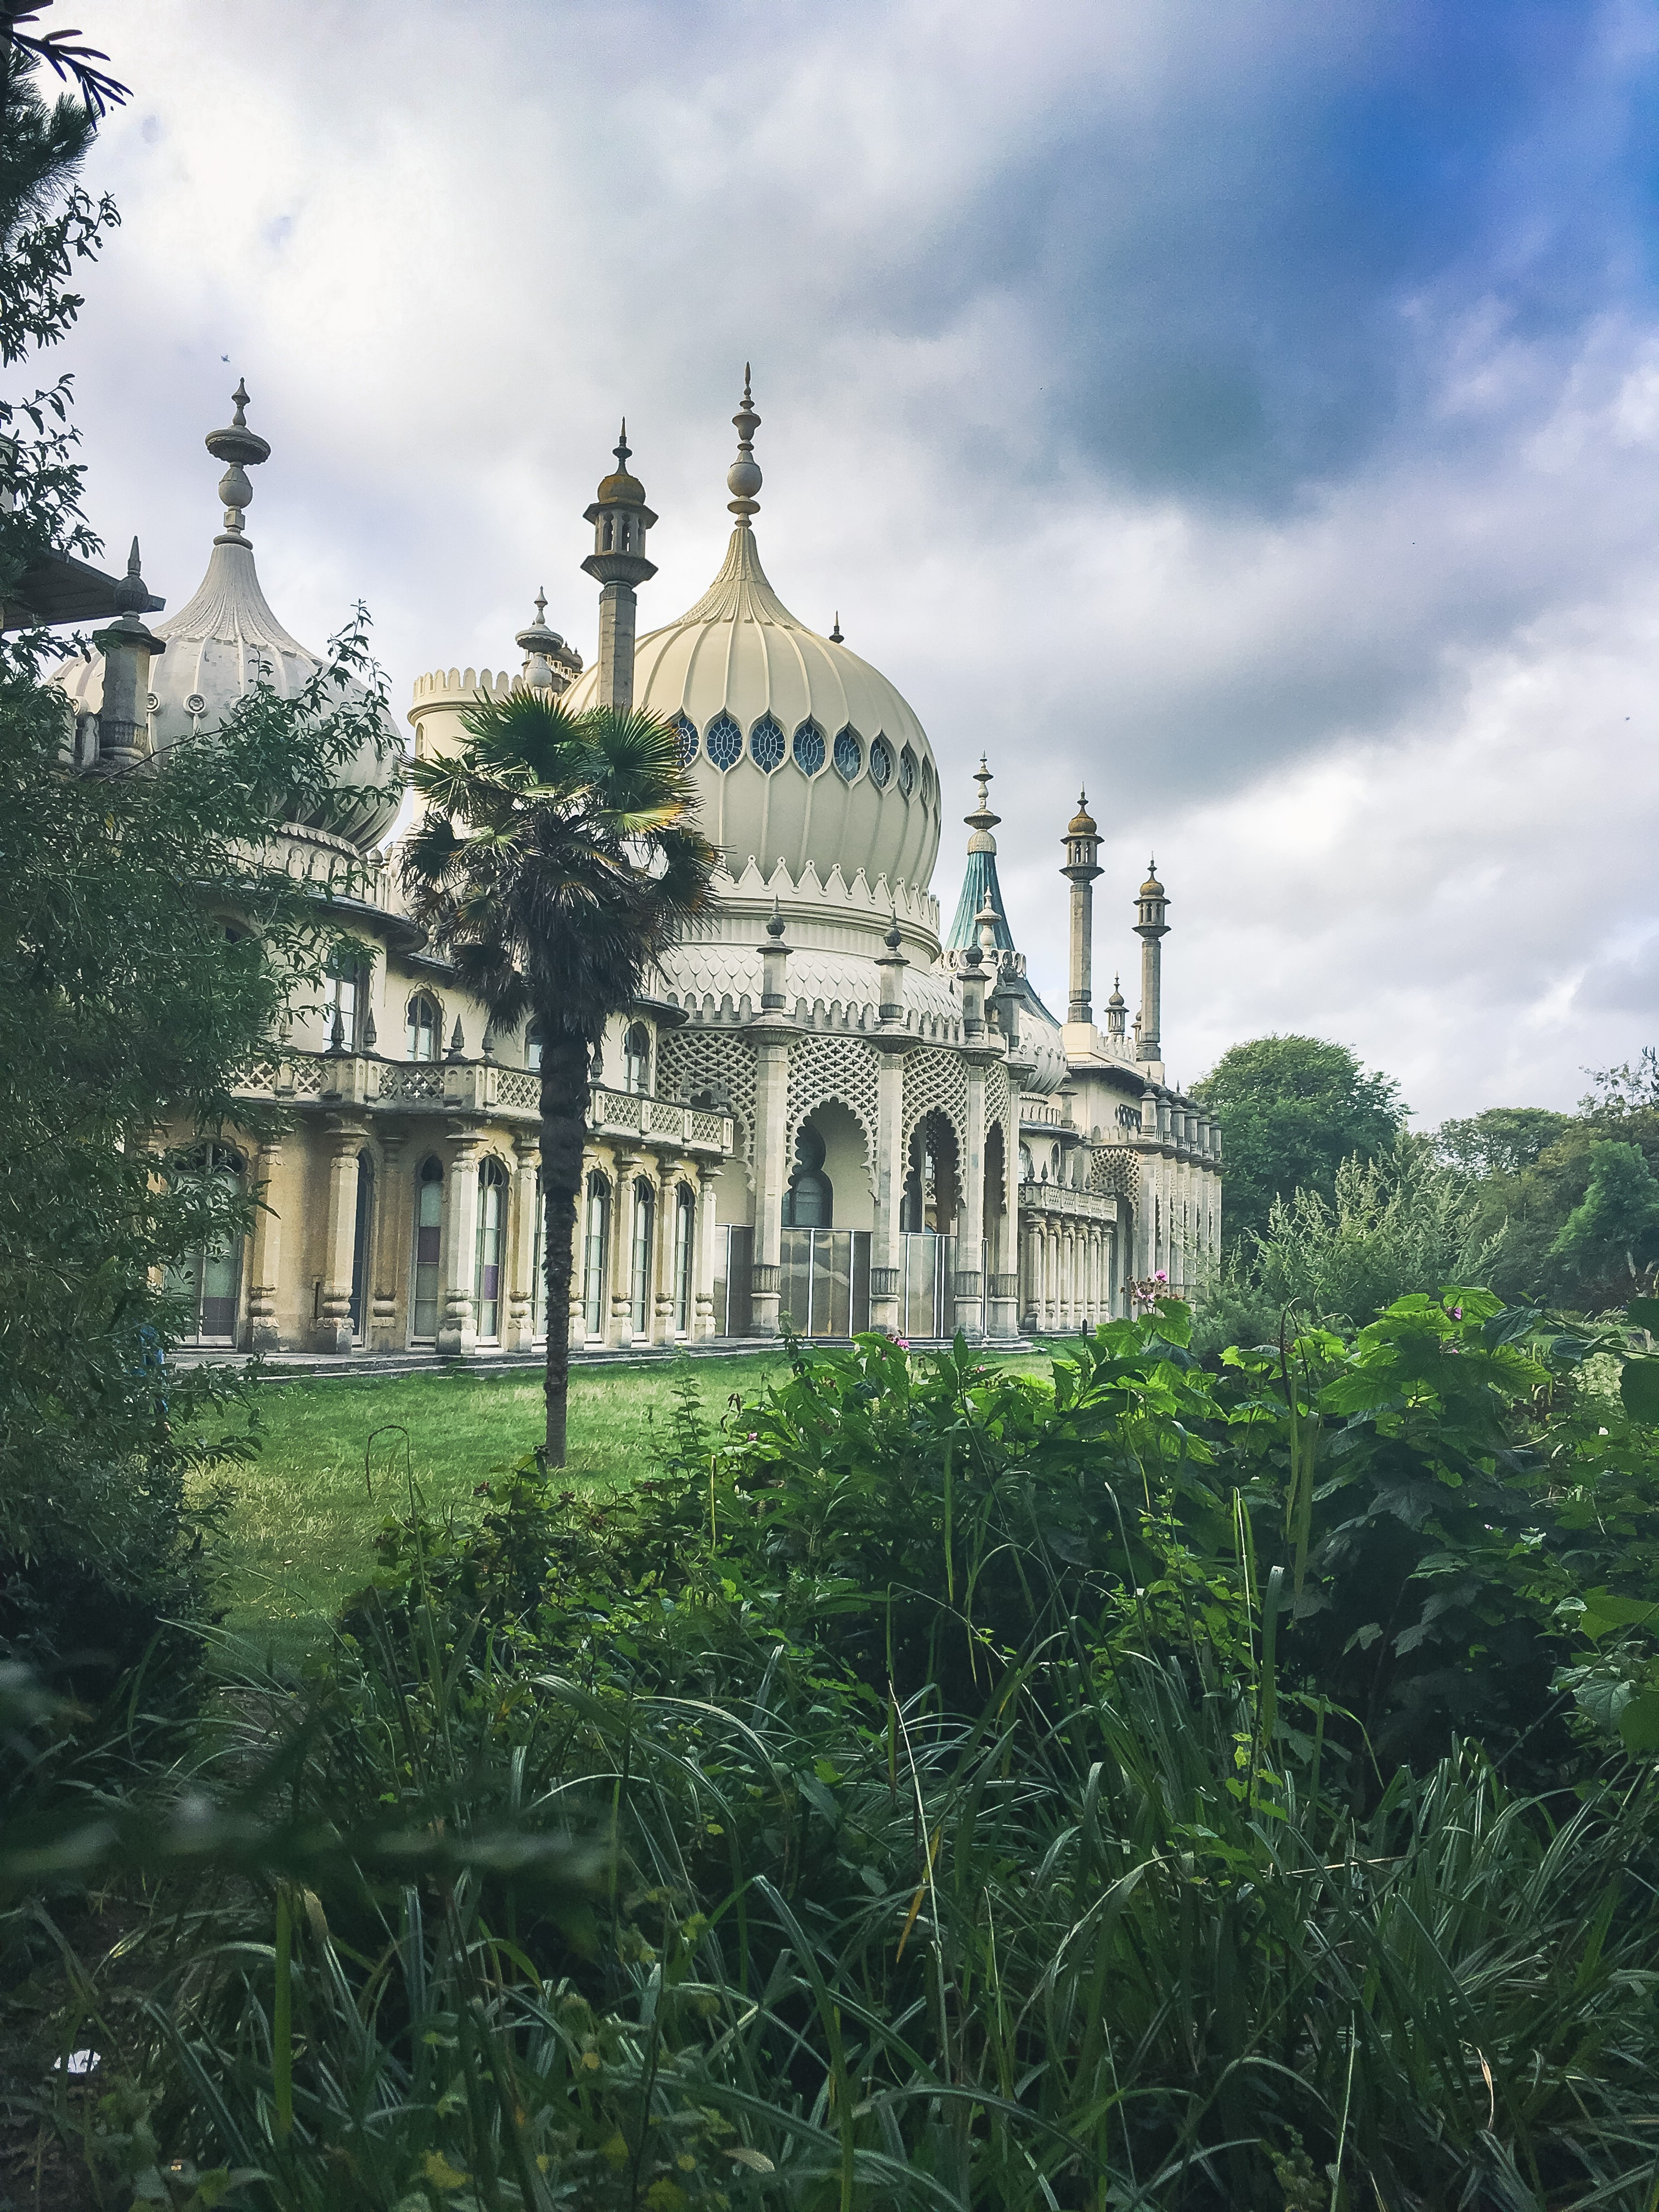 The beautiful Royal Pavilion in Brighton